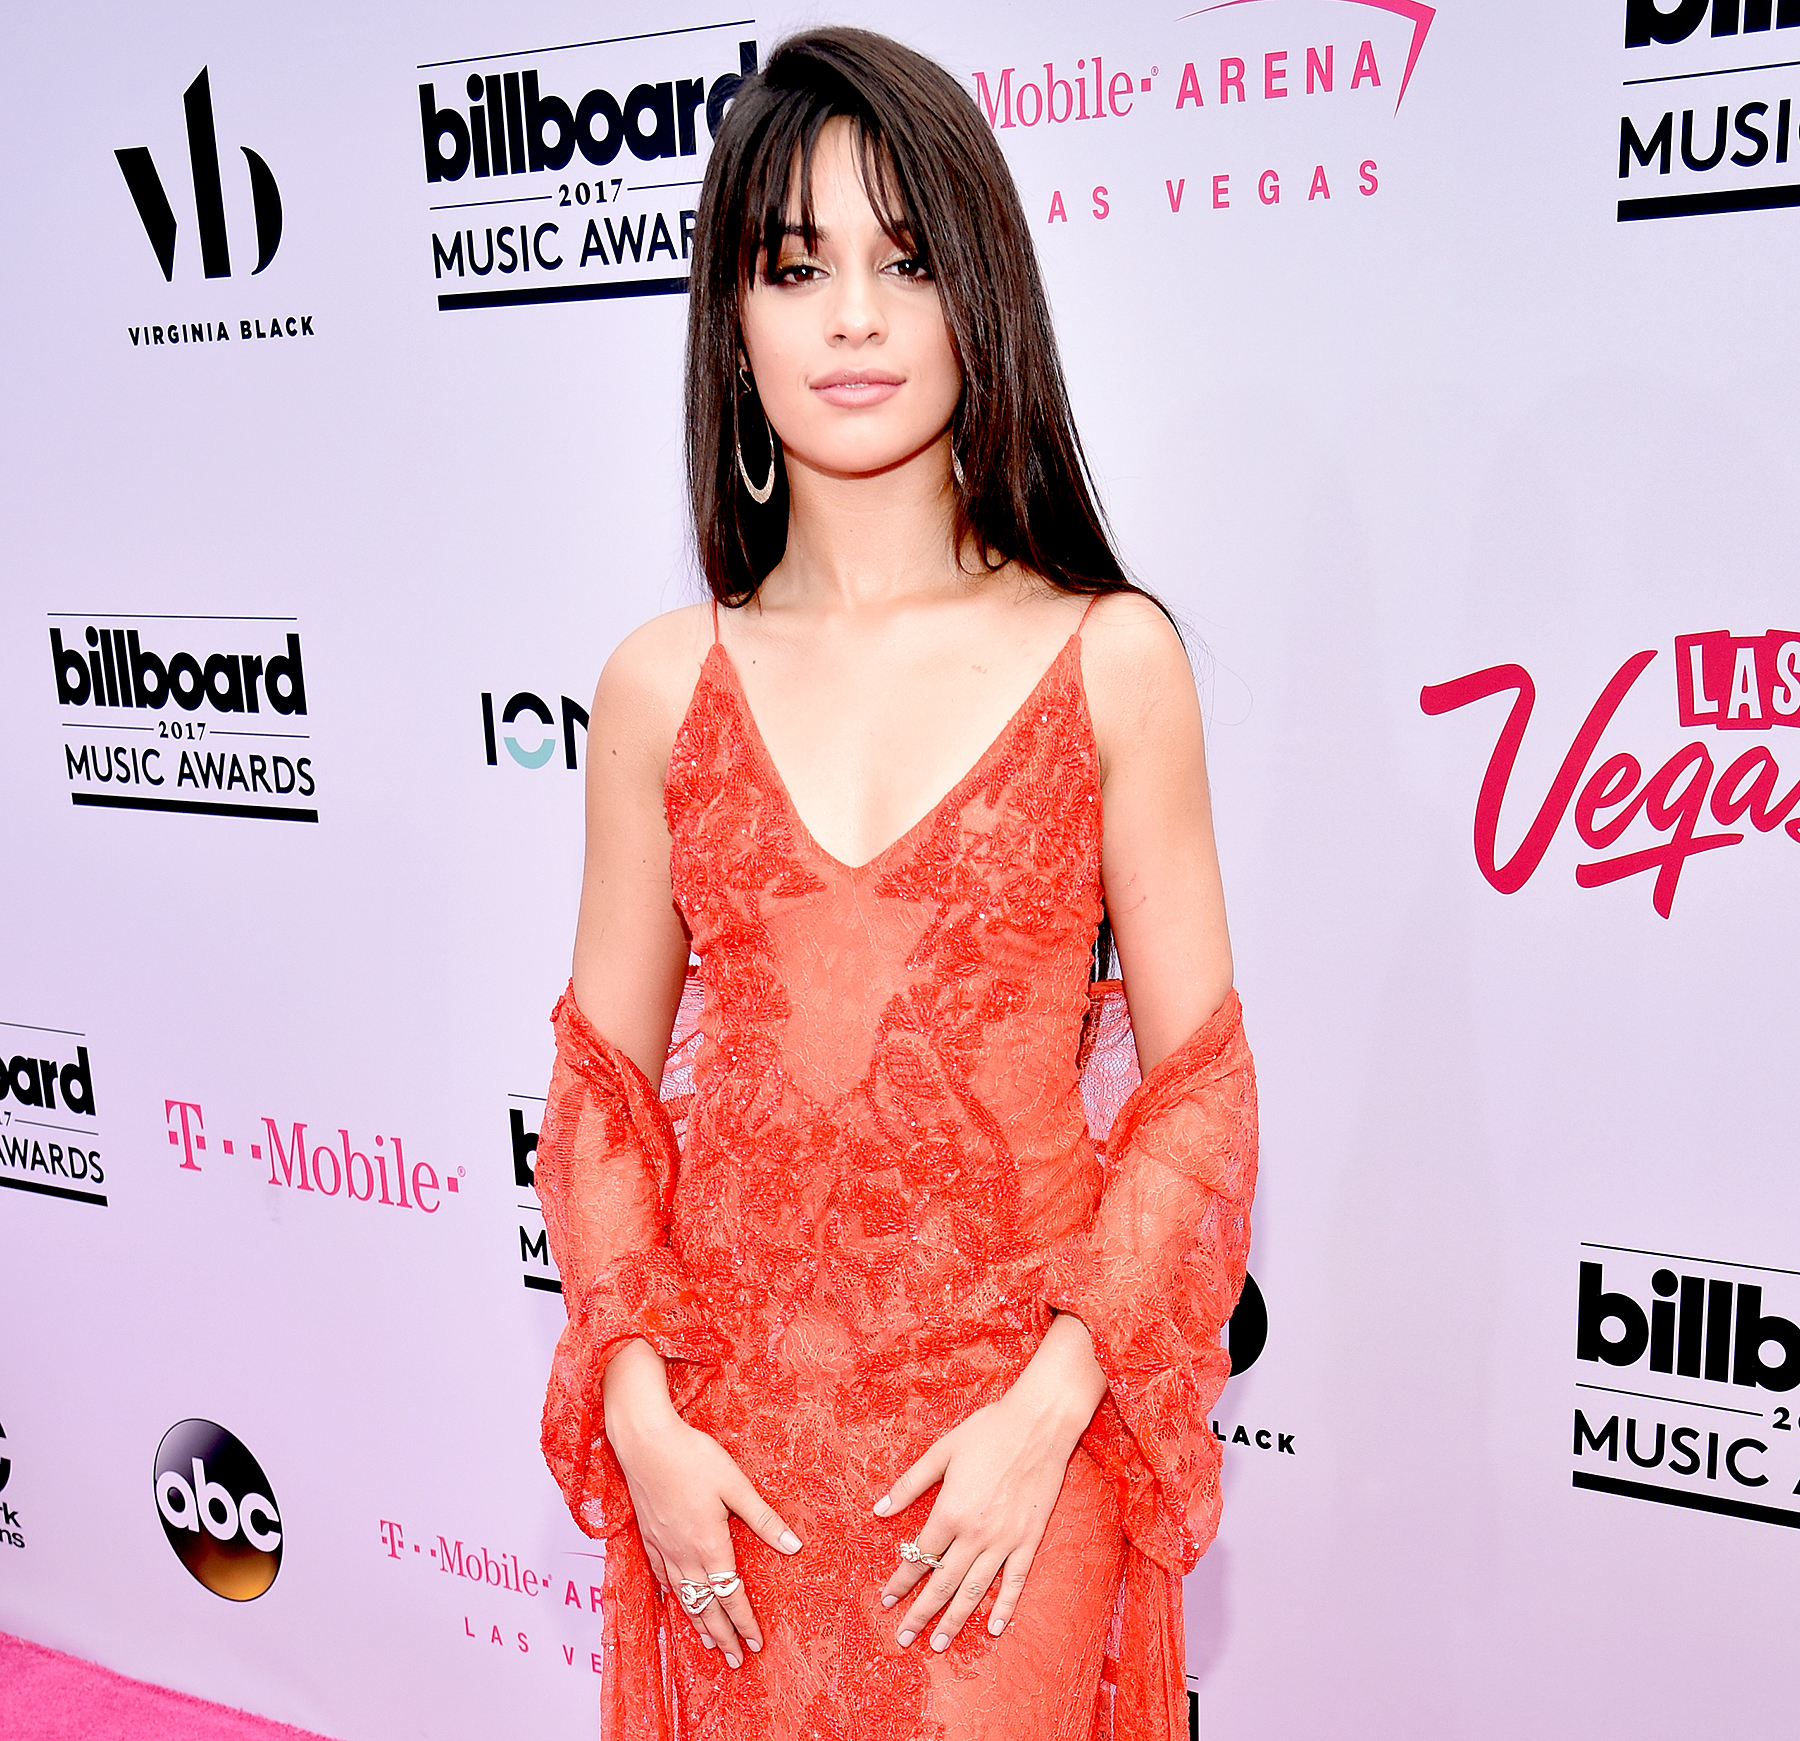 Camila Cabello attends the 2017 Billboard Music Awards at T-Mobile Arena on May 21, 2017 in Las Vegas, Nevada.